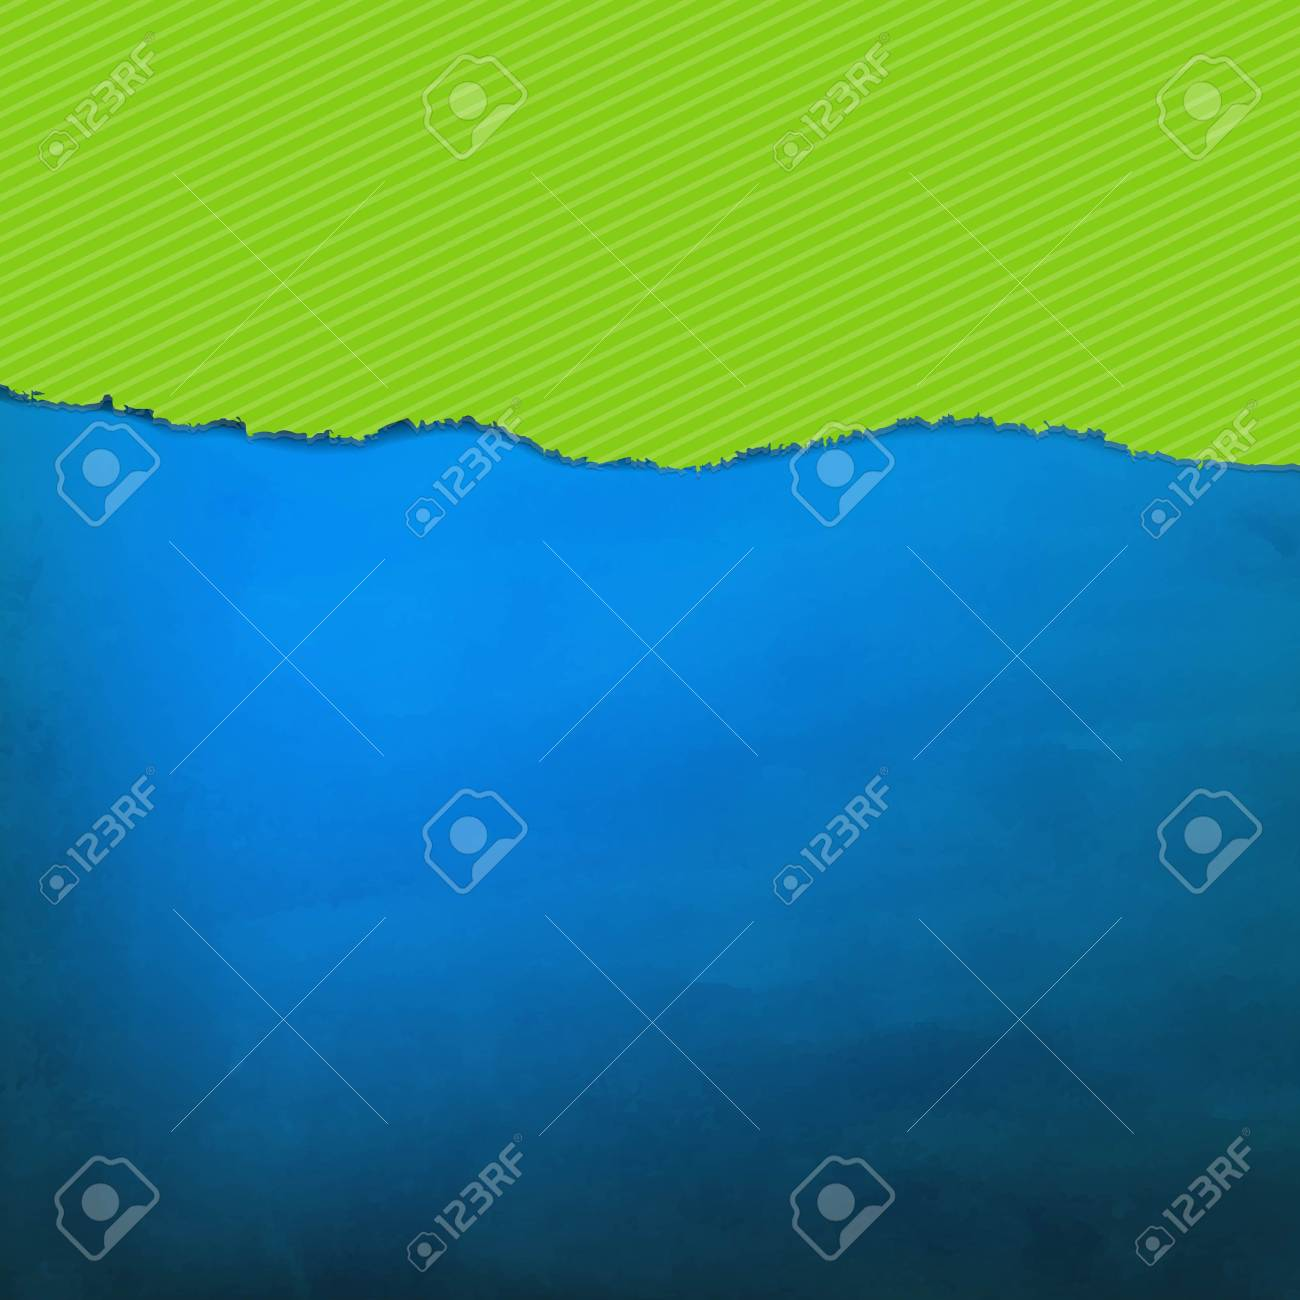 Blue Texture With Green Torn Paper With Gradient Mesh, Vector Illustration Stock Vector - 19580429